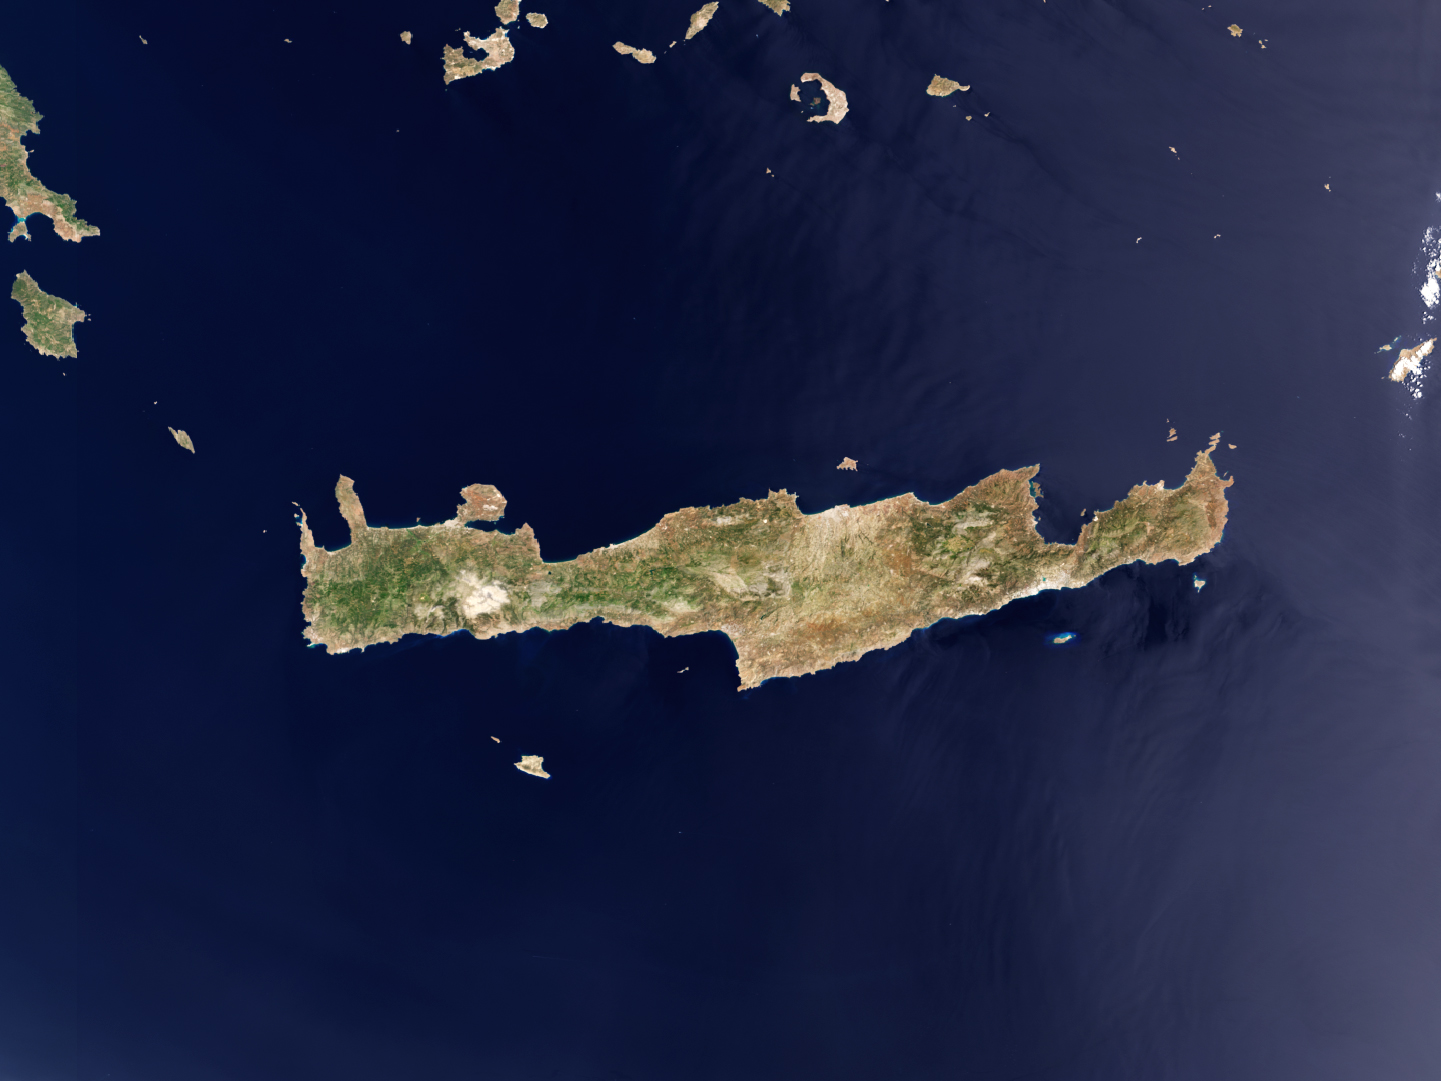 Satellite imagery of Crete, shows that much of the island is rugged, dry and mountainous, with much of the vineyards located in the centre-east, the widest north-south portion of the region.